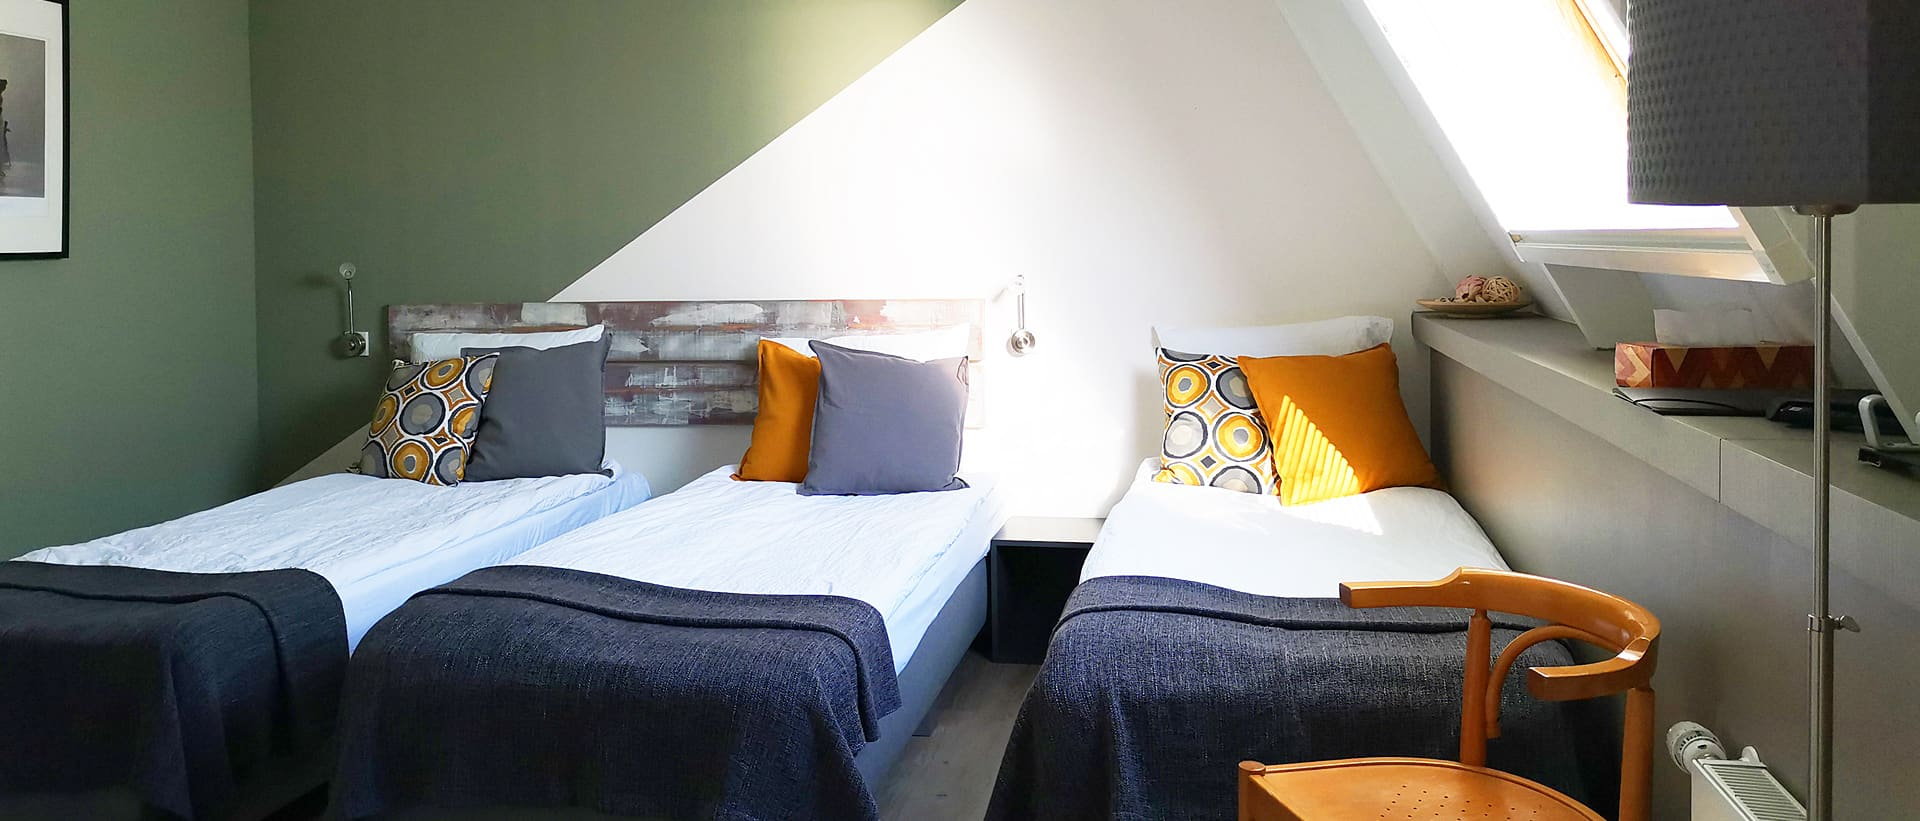 B&B triple room equipped with sanitary facilities